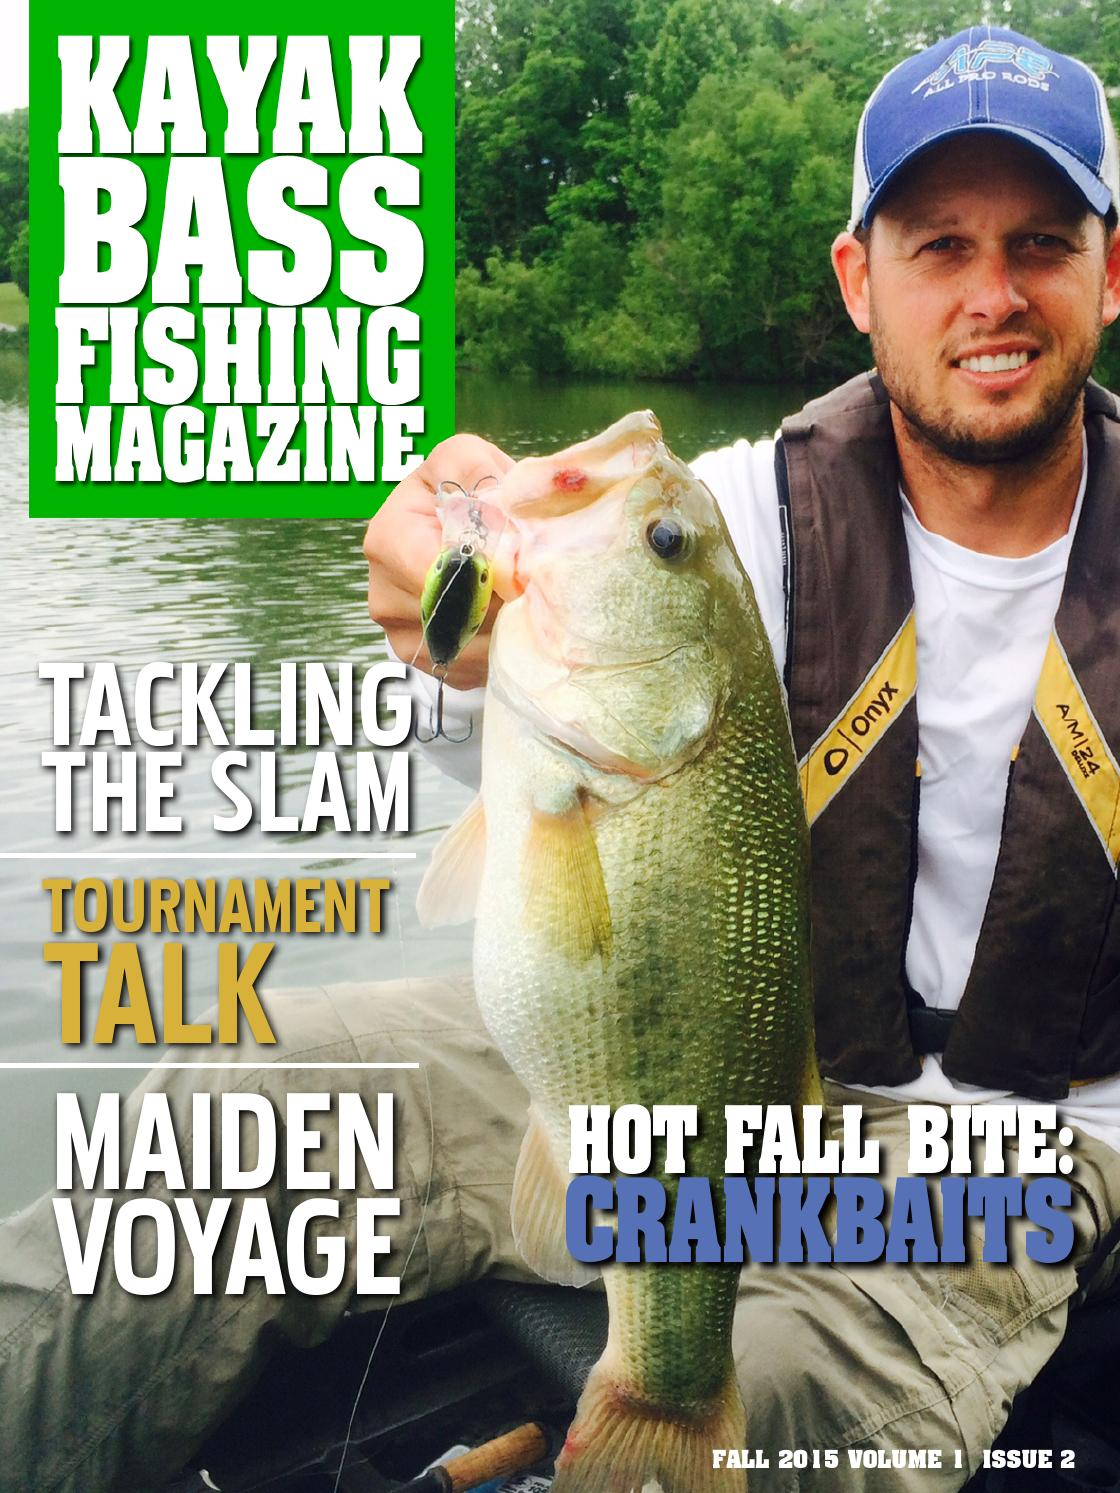 Kayak bass fishing magazine fall 2015 by crooked creek for Bass fishing magazine